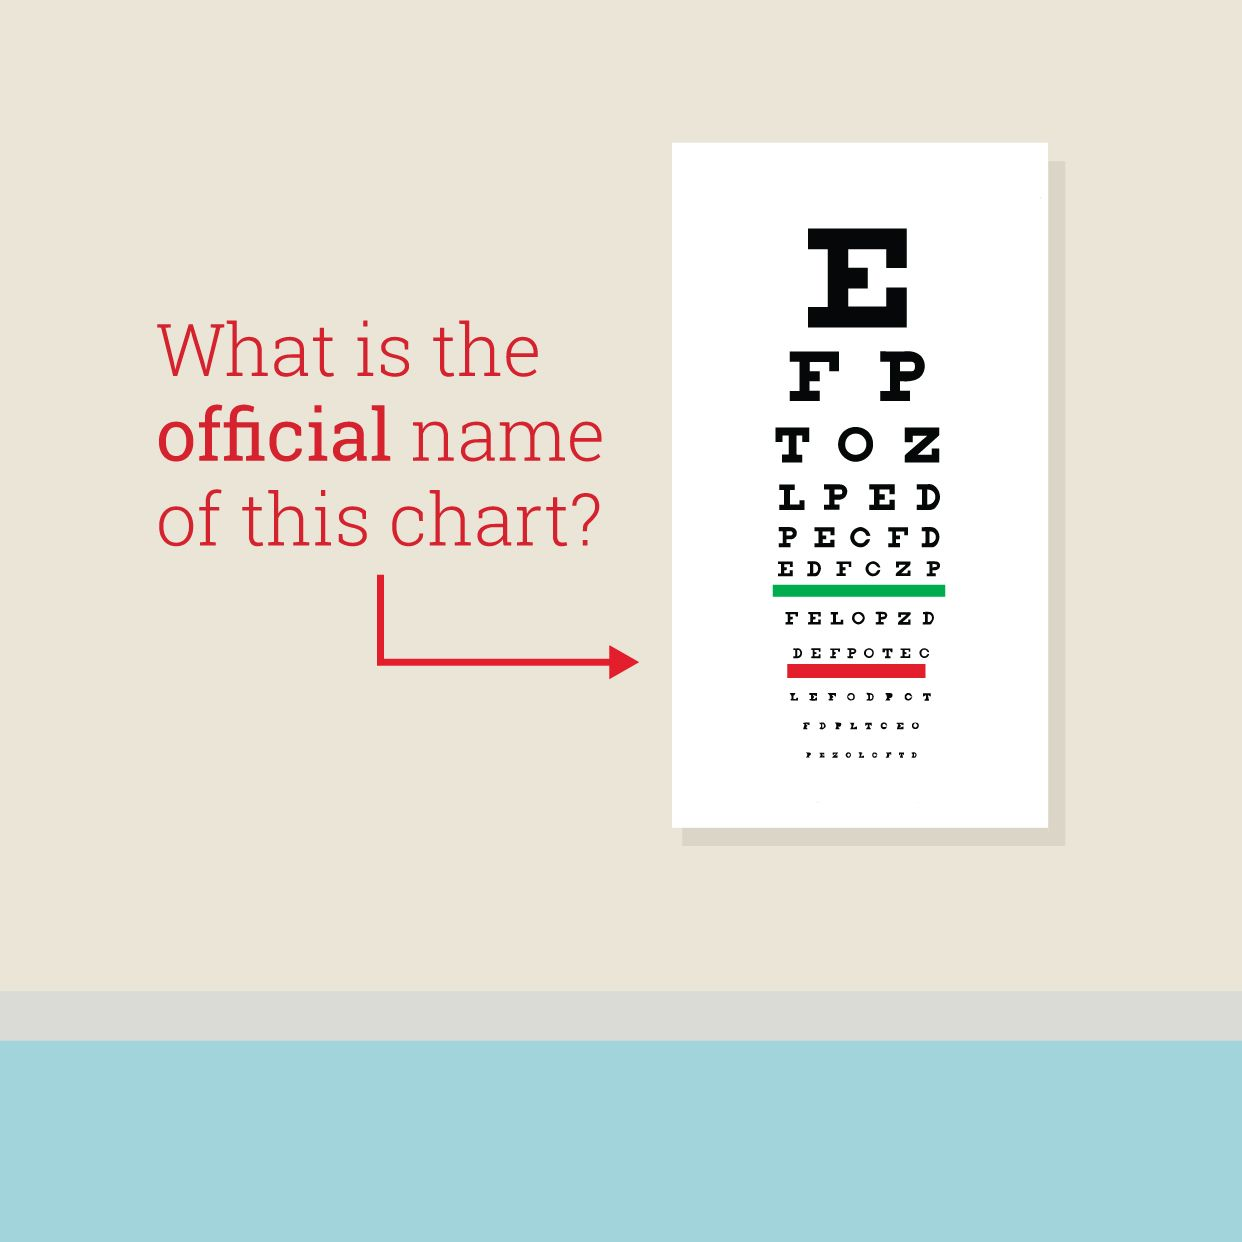 Snellen Charts Display Letters Of Increasingly Smaller Size And Are Used To Measure Visual Acuity Eye Care Health Eye Facts Vision Eye